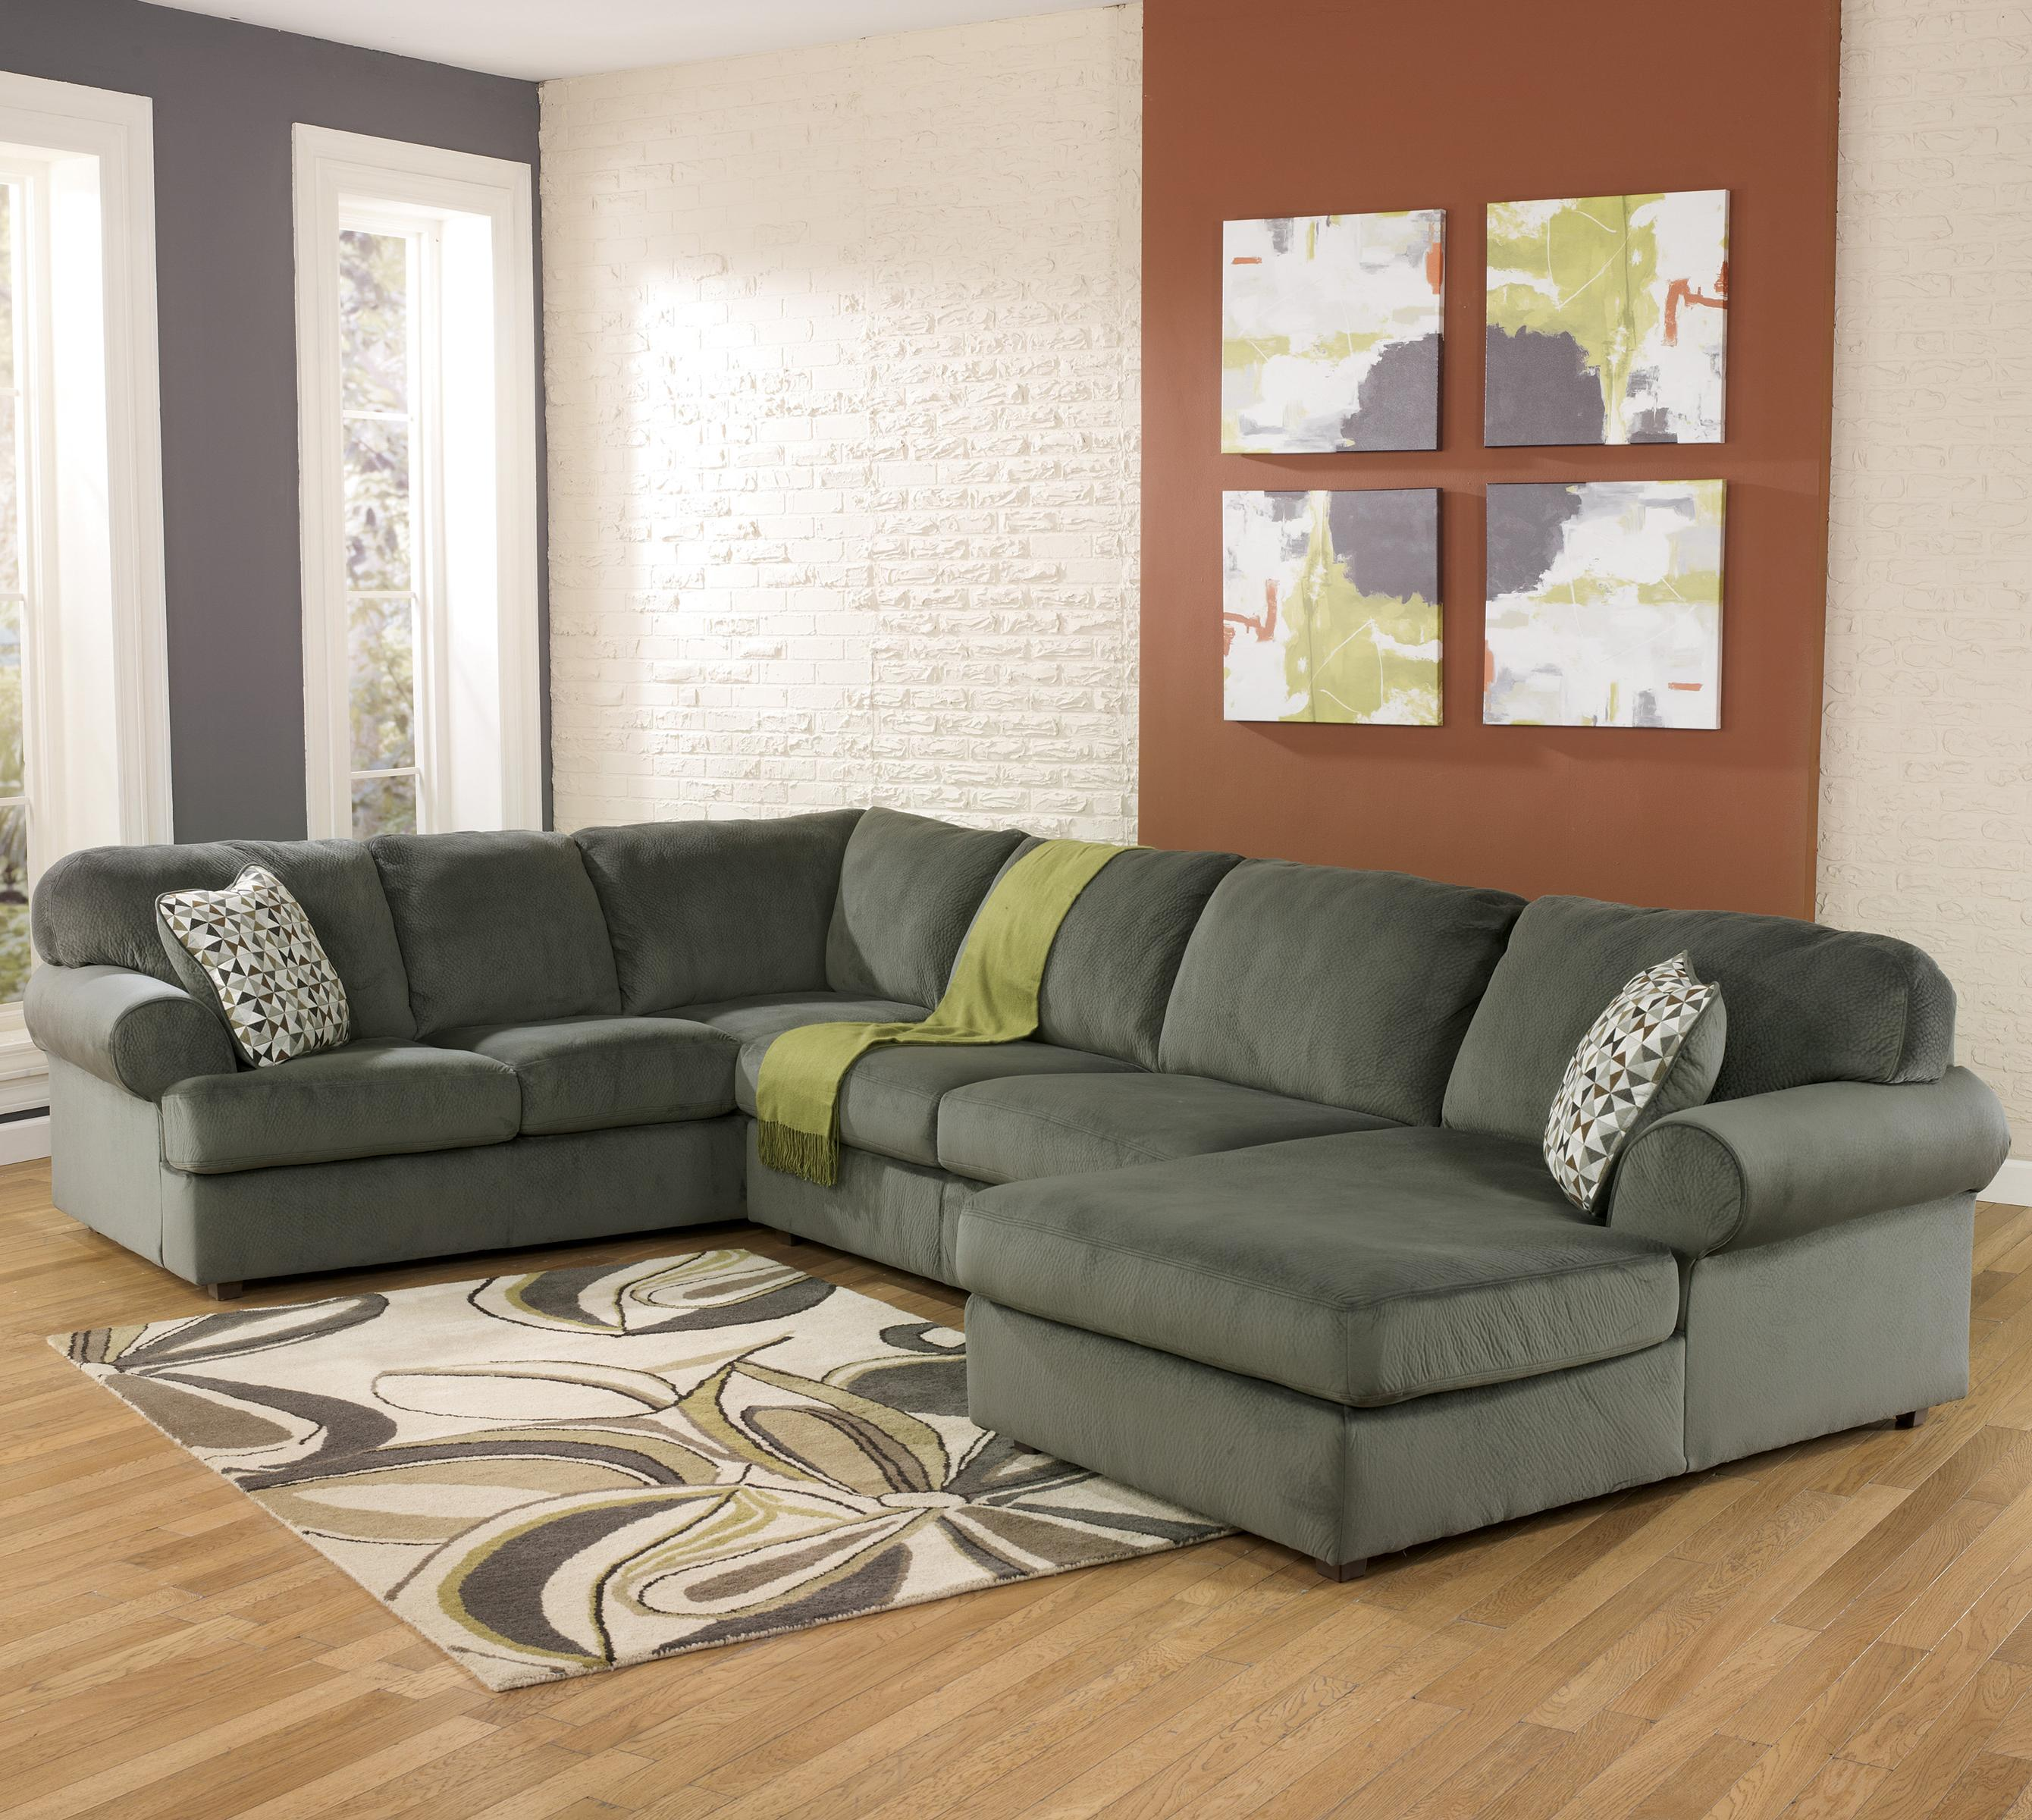 Casual Sectional Sofa with Right Chaise : cream sectional sofa - Sectionals, Sofas & Couches